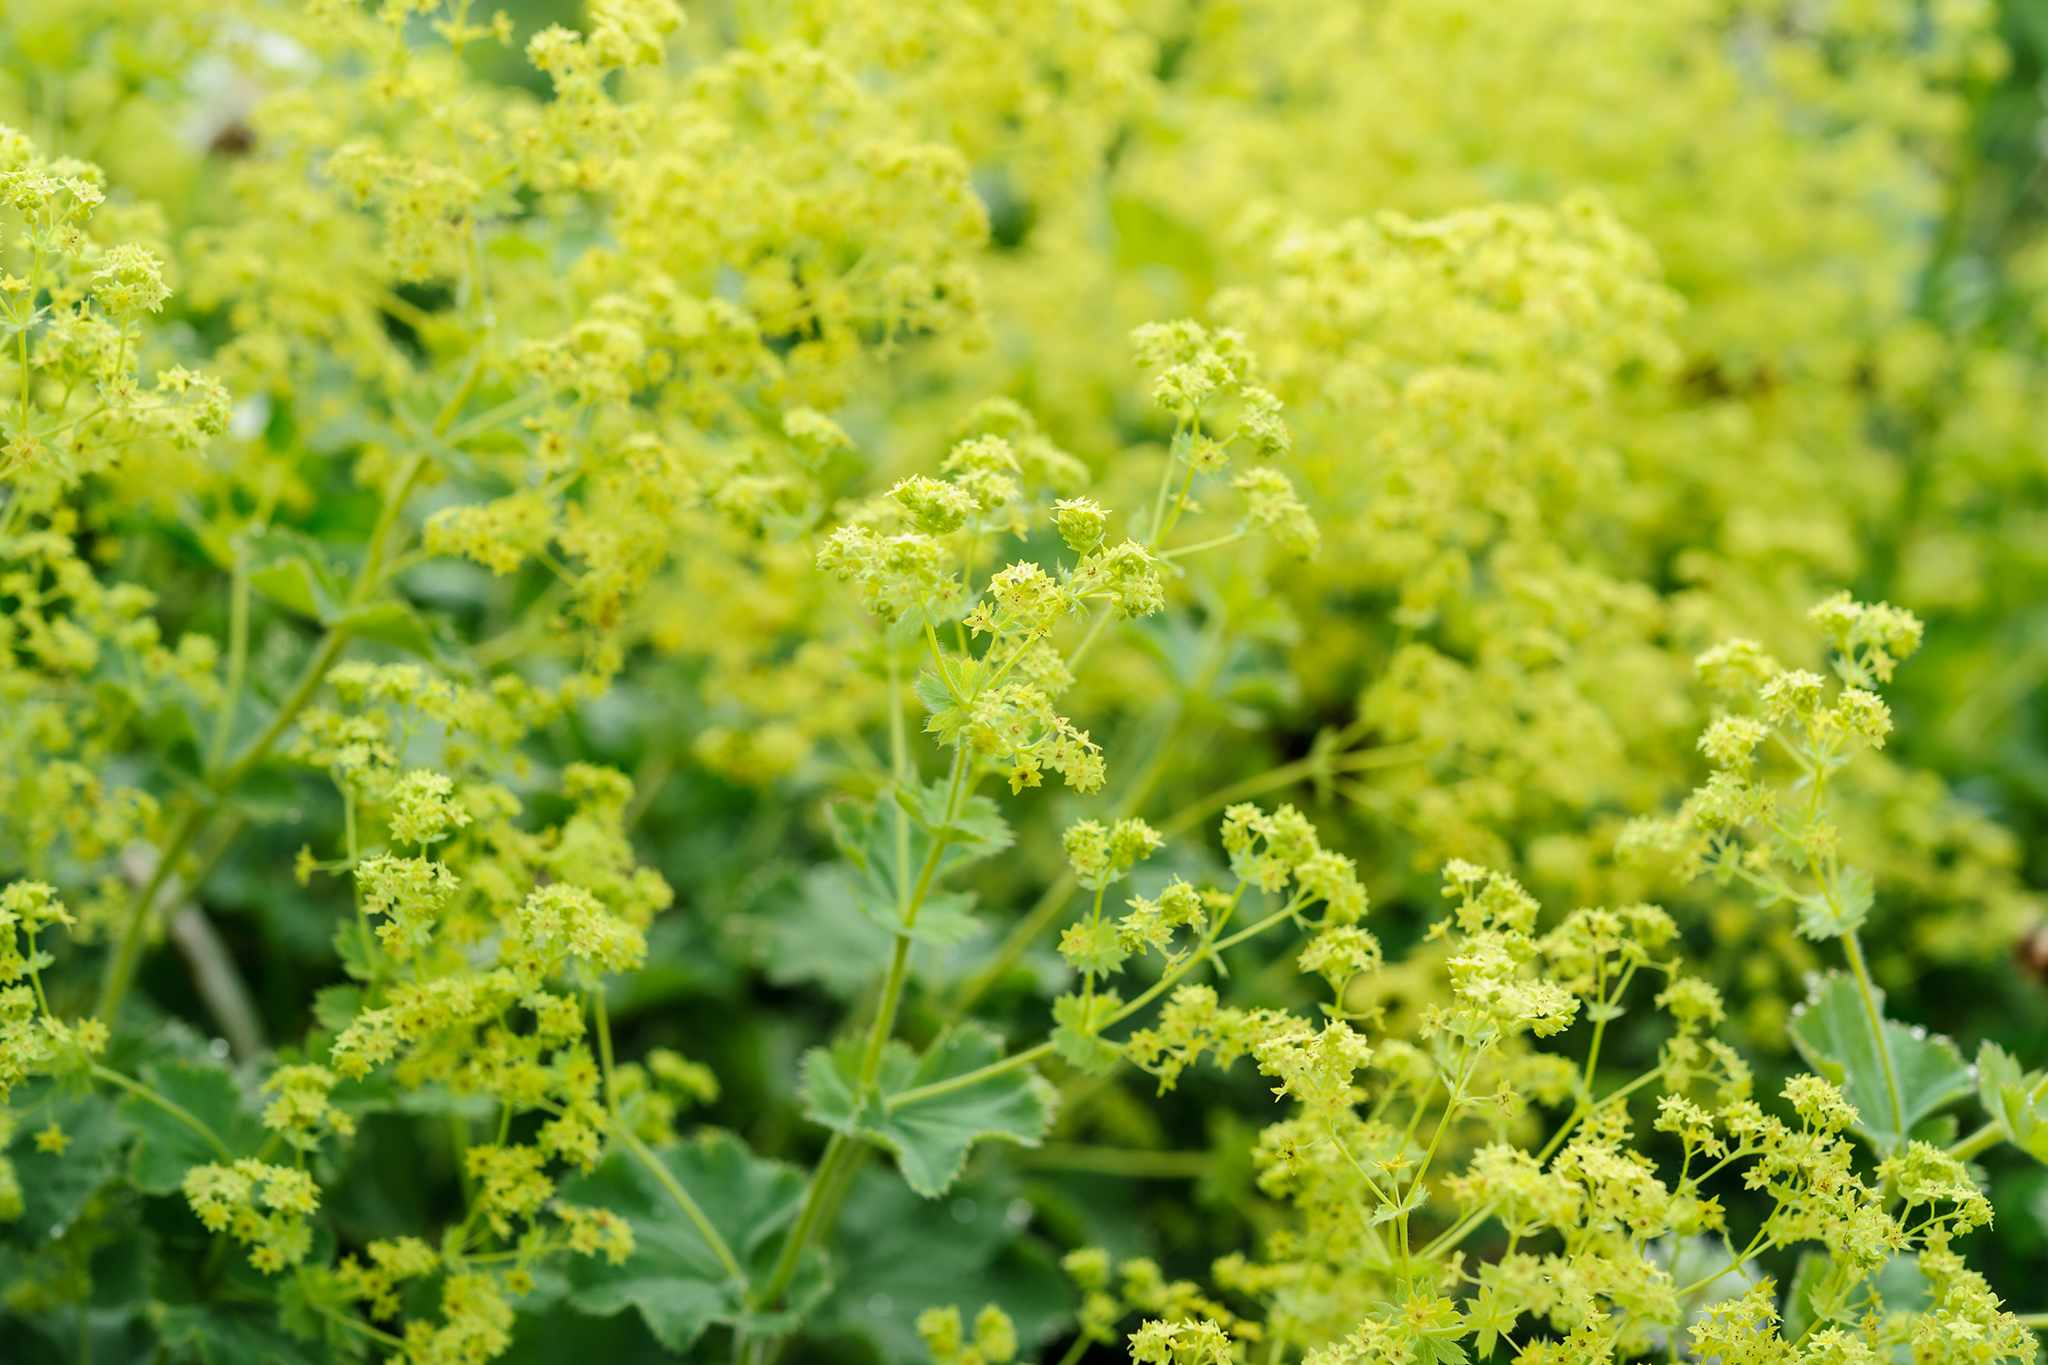 How to Divide Lady's Mantle